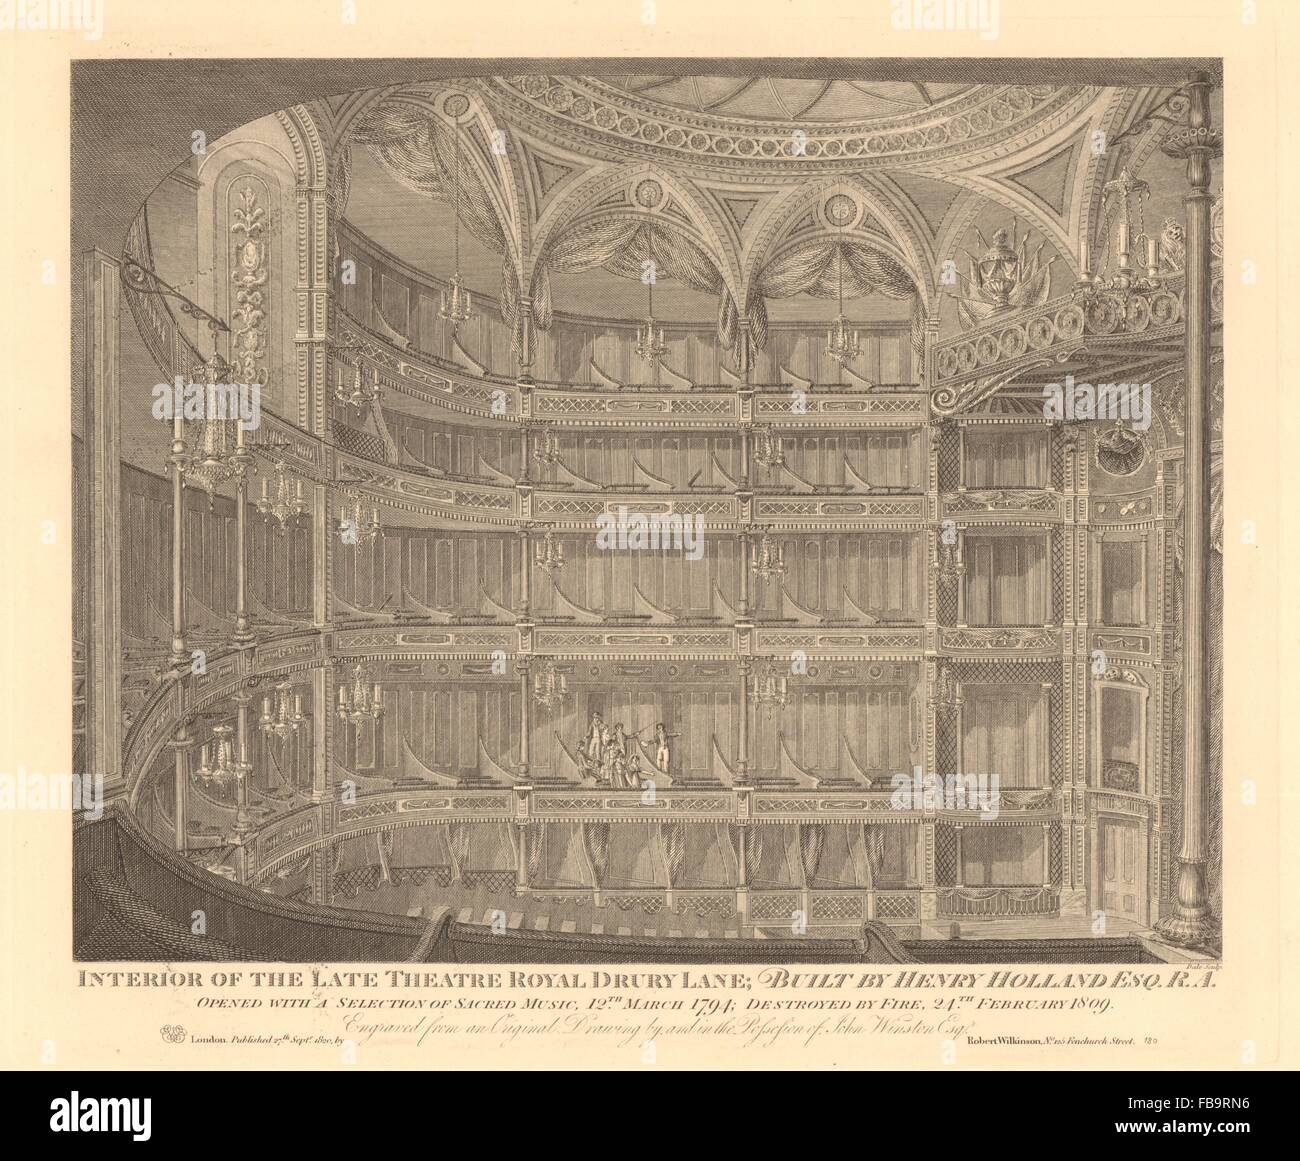 The old THEATRE ROYAL DRURY LANE 1794-1809. Henry Holland. Covent Garden, 1834 - Stock Image